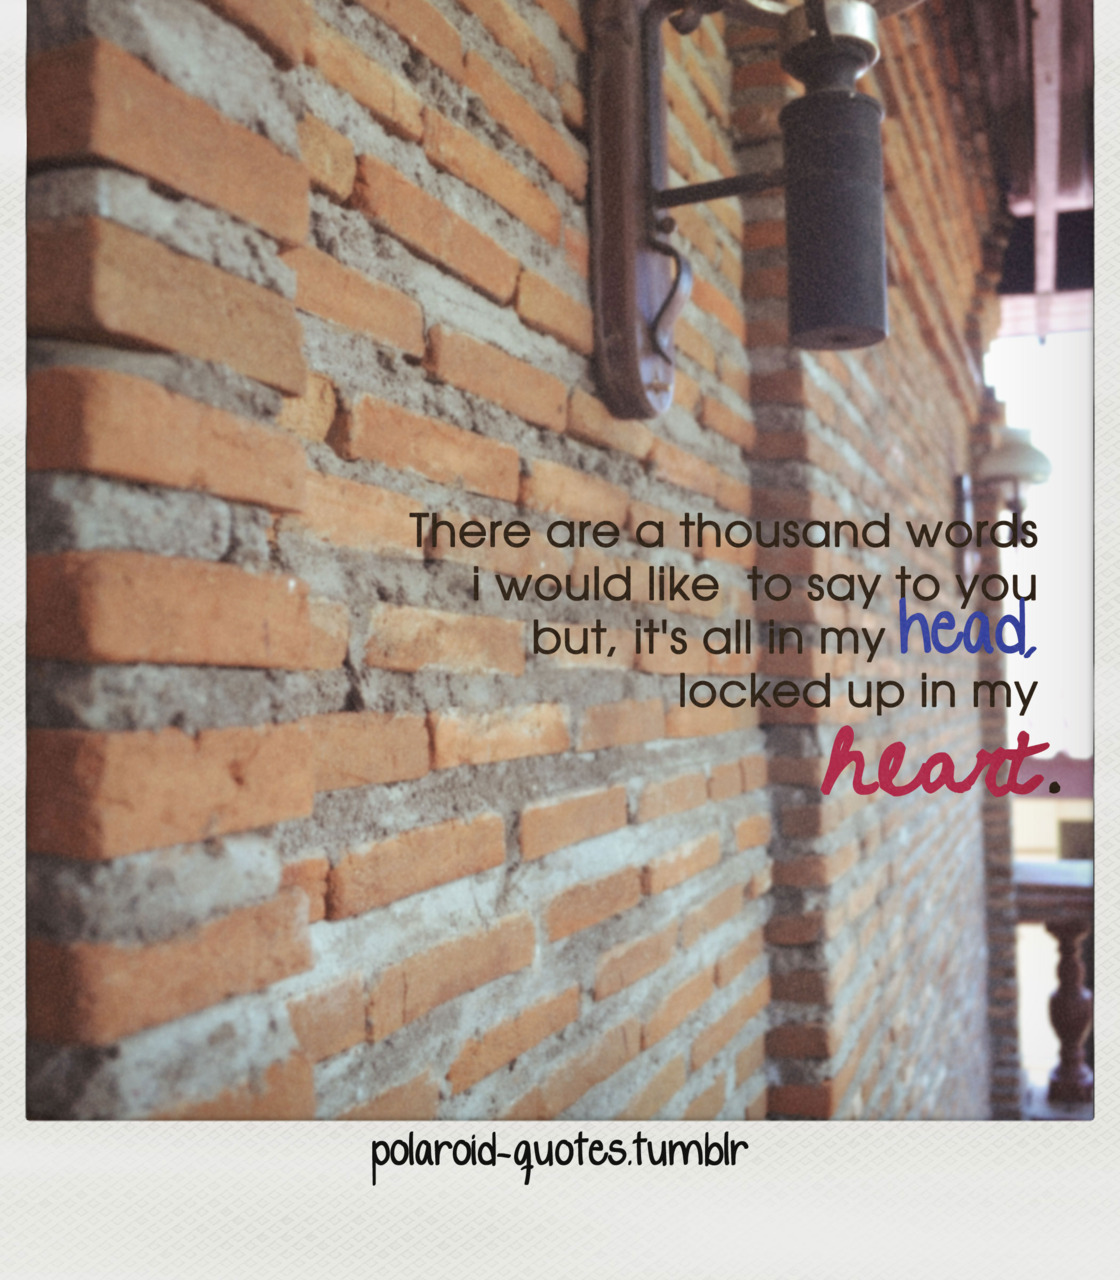 polaroid-quotes:  029